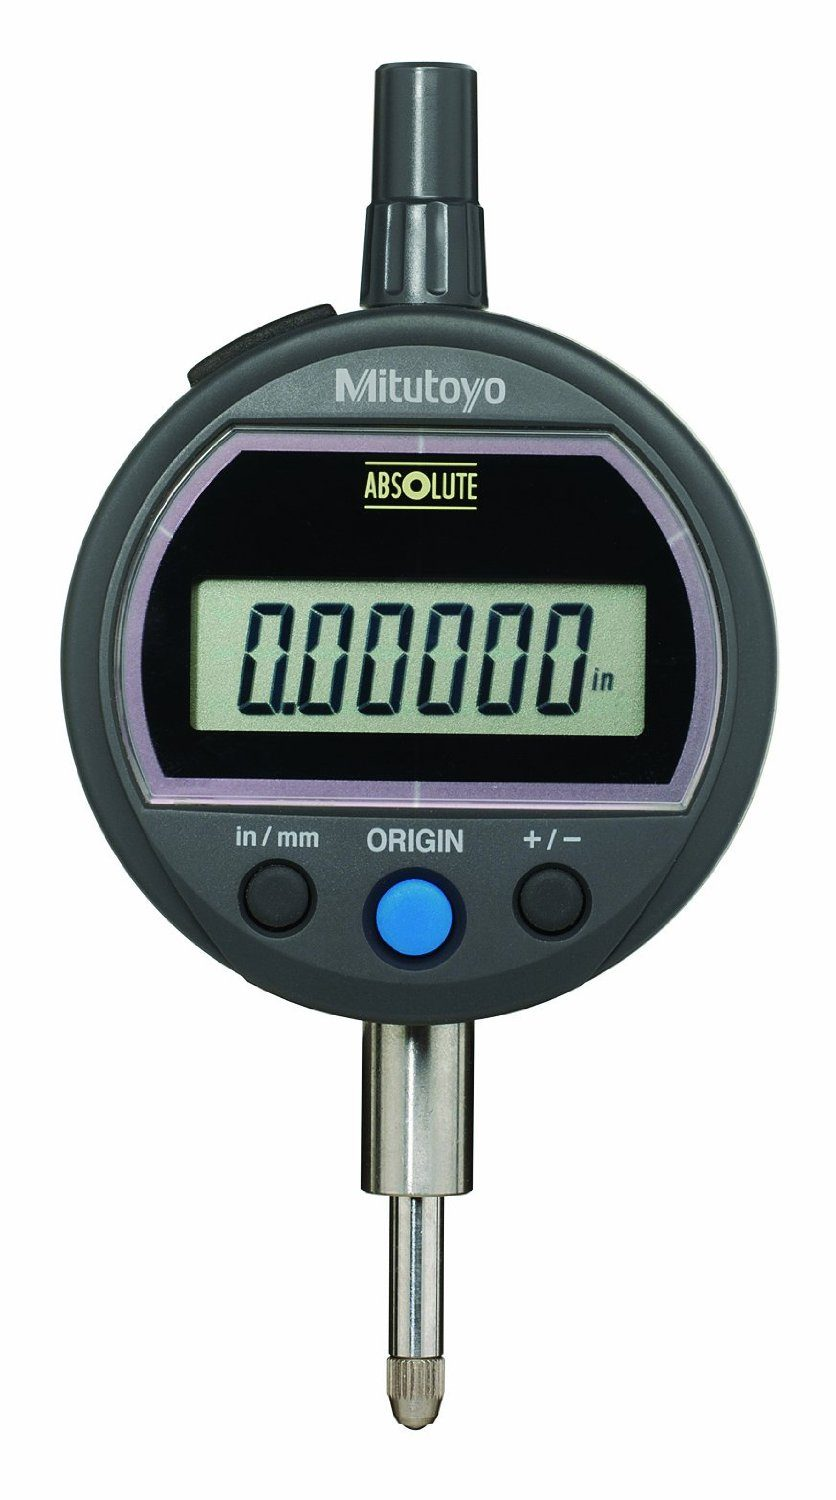 Mitutoyo Absolute Digital Indicator : Mitutoyo id ss abs solar powered digimatic indicator